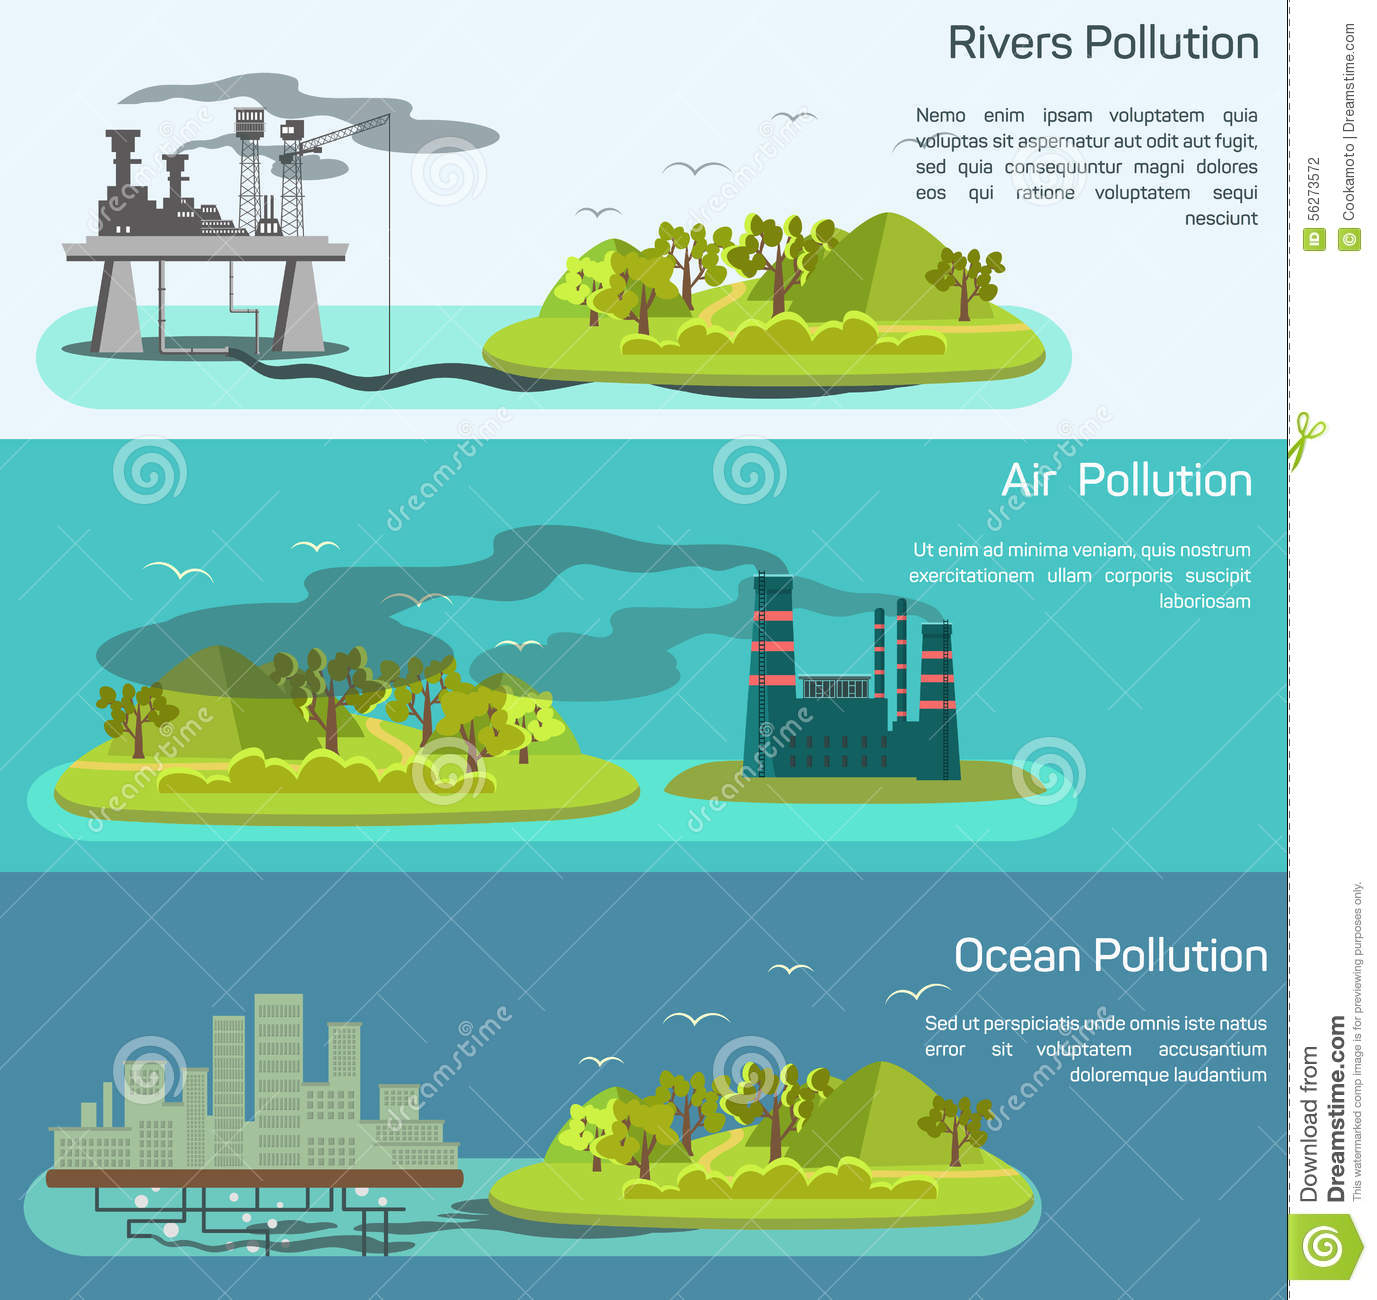 Polluted river clipart image royalty free library Polluted River Stock Illustrations – 81 Polluted River Stock ... image royalty free library